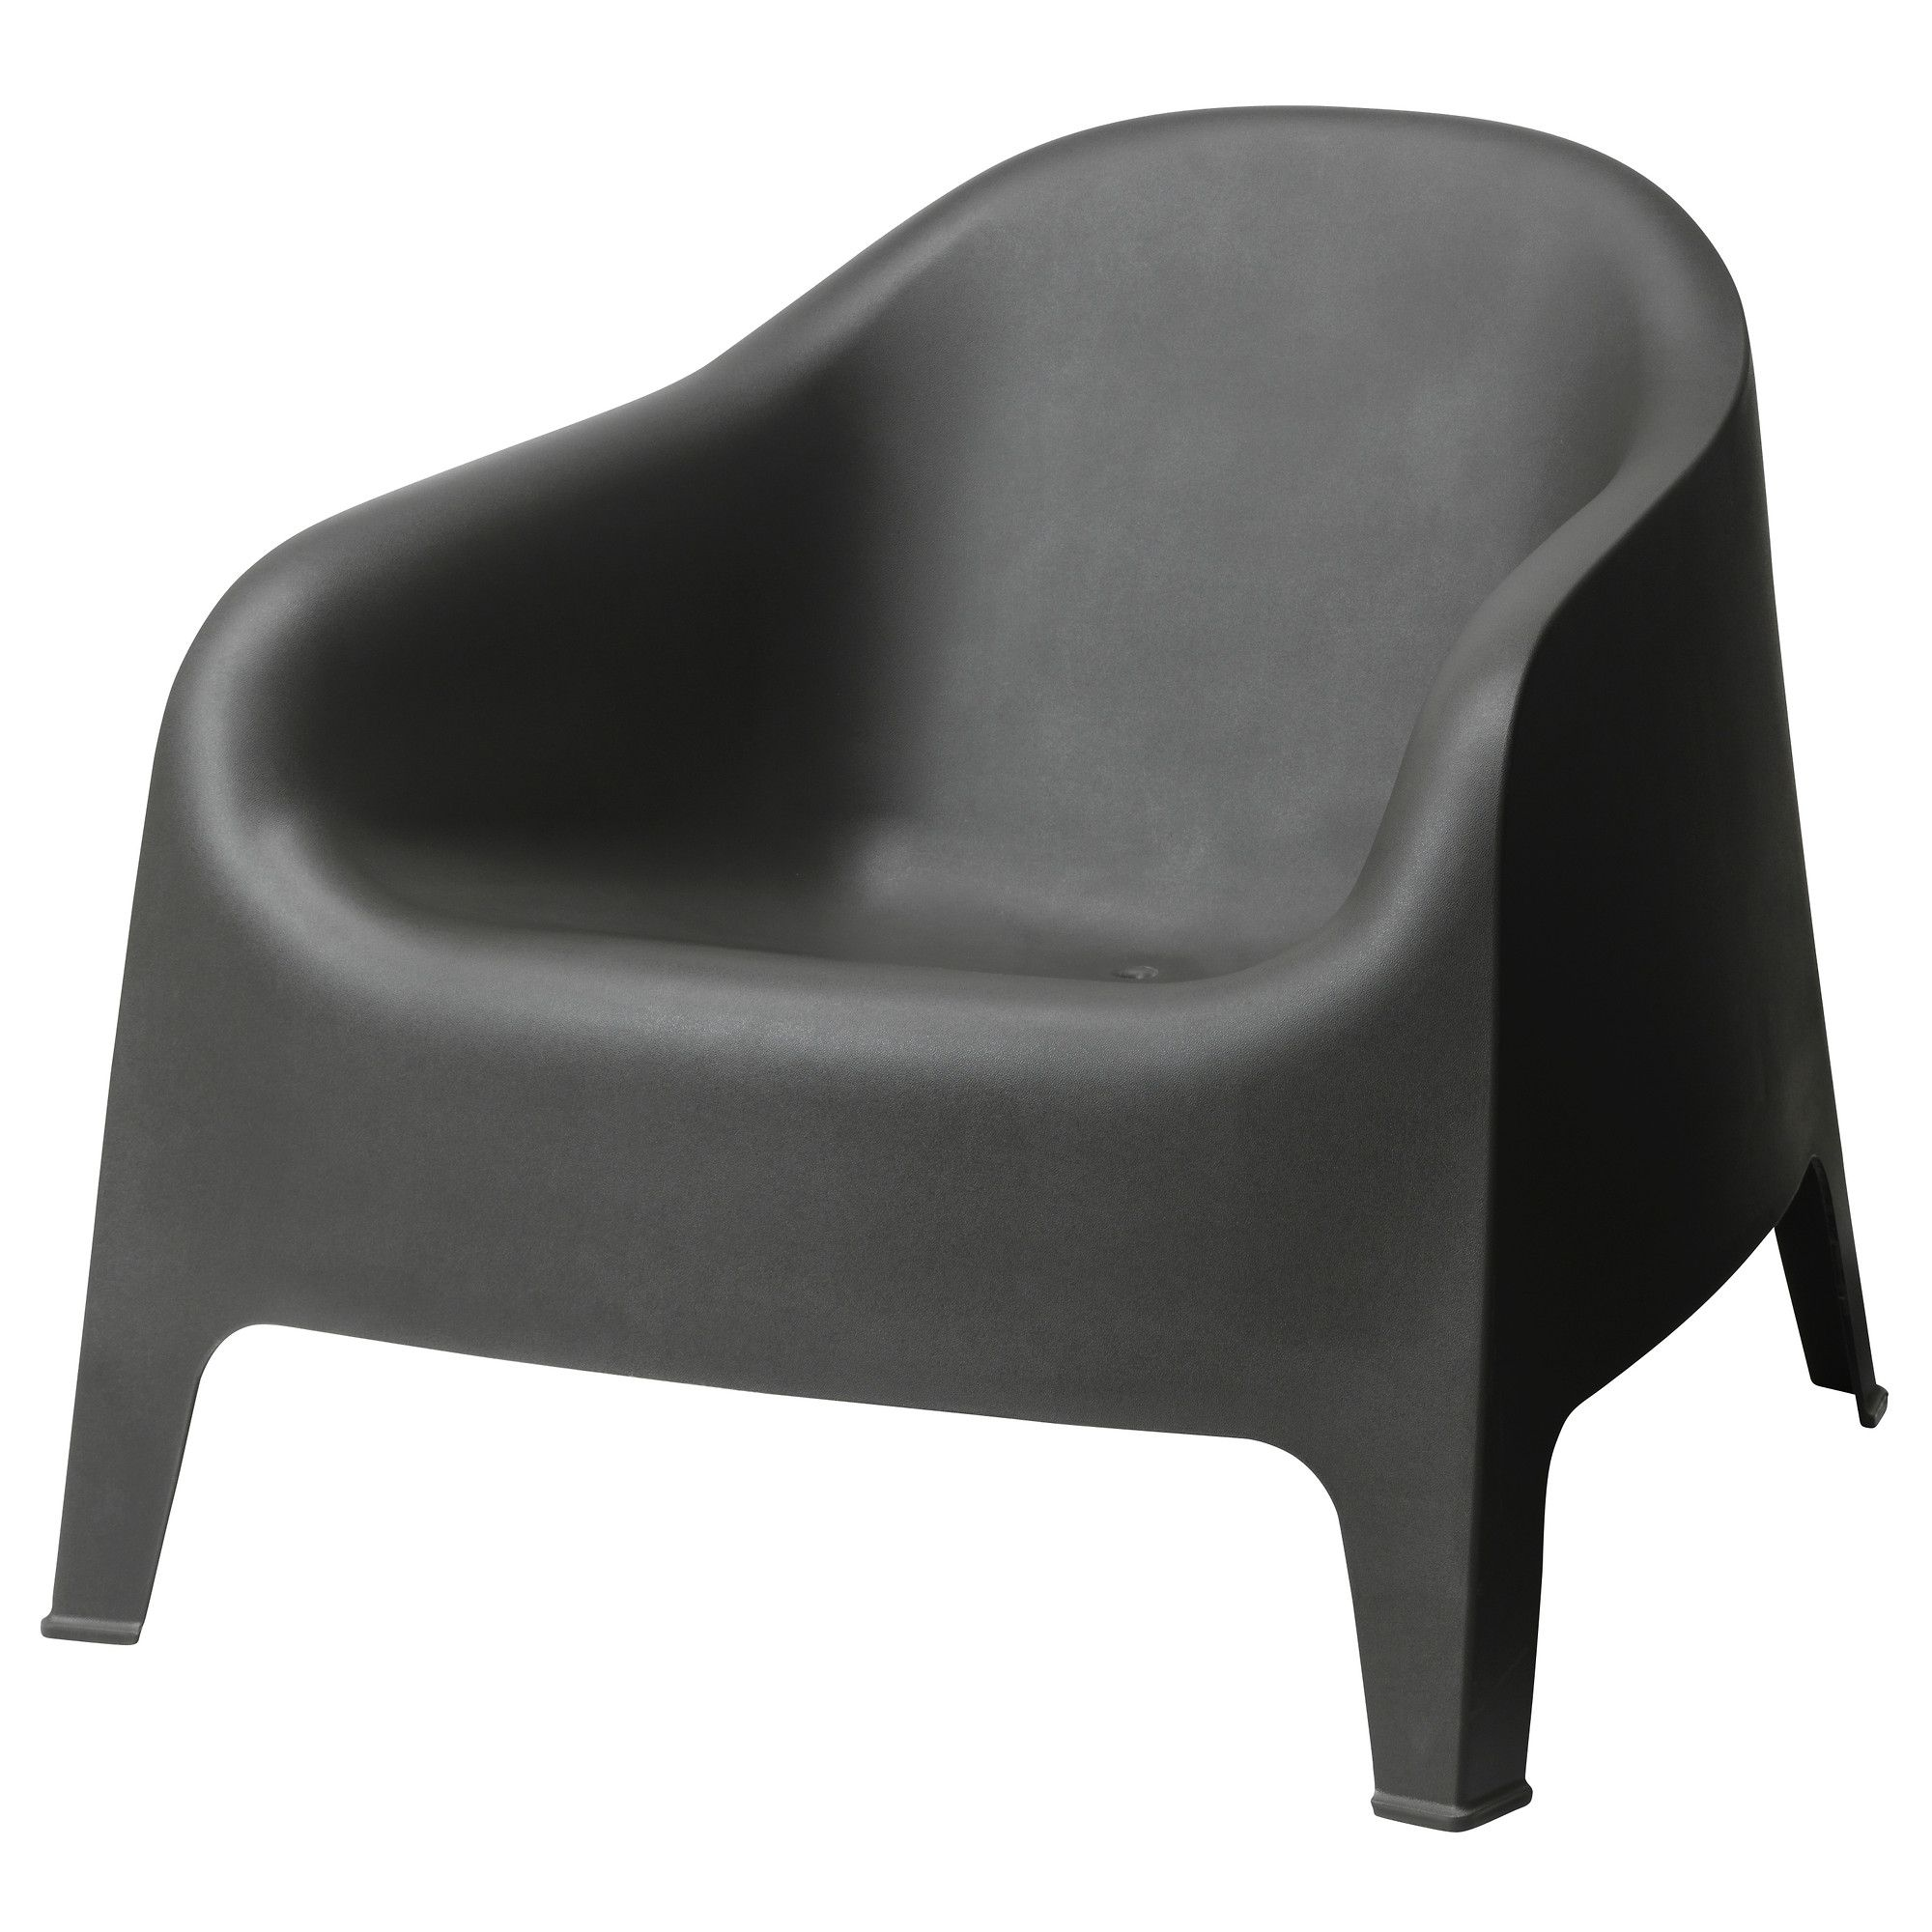 imports chas pier chair velvet in gray zoom zinc shop armchair